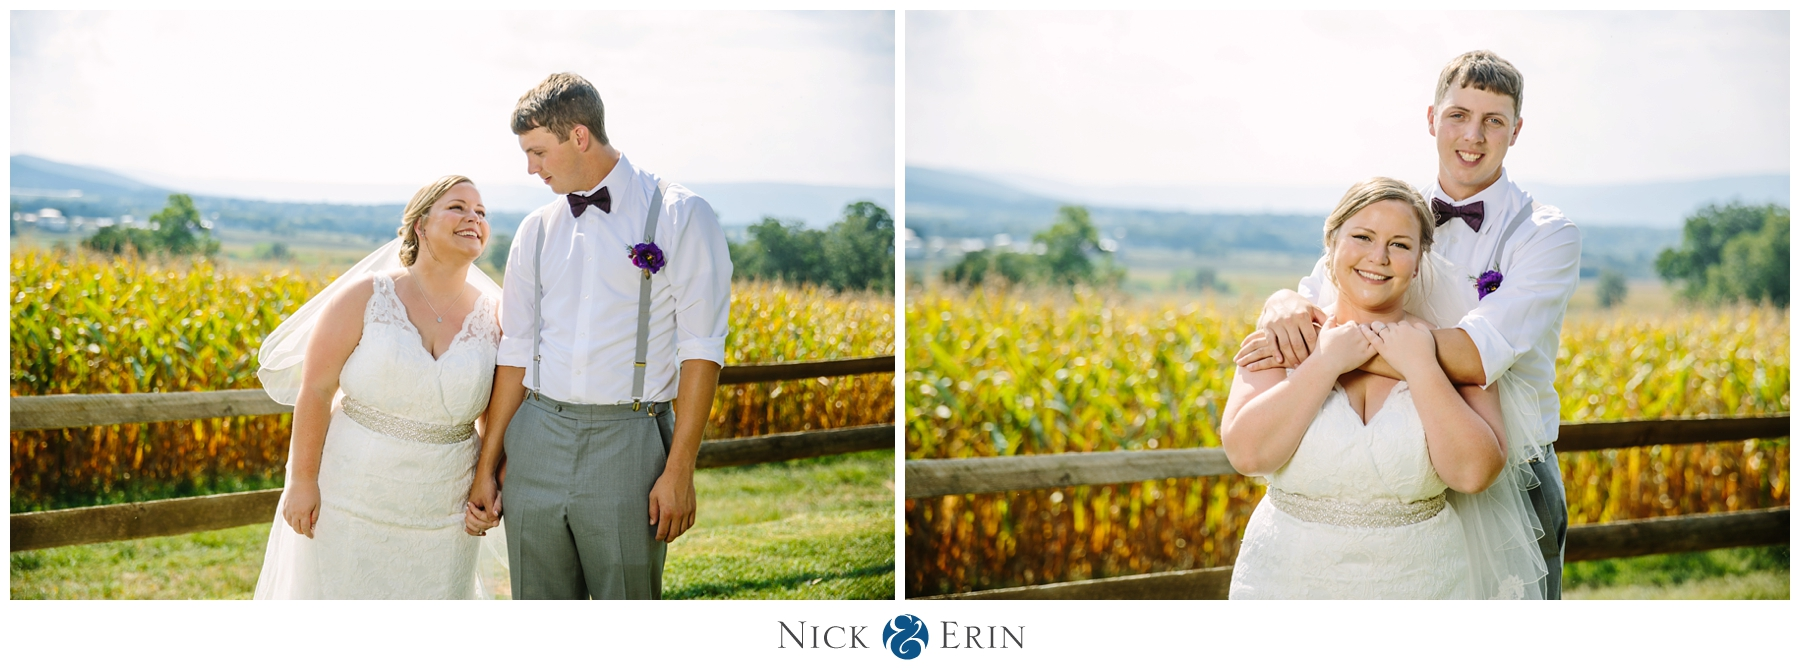 donner_photography_megan-corey-luray-virginia-wedding_0009